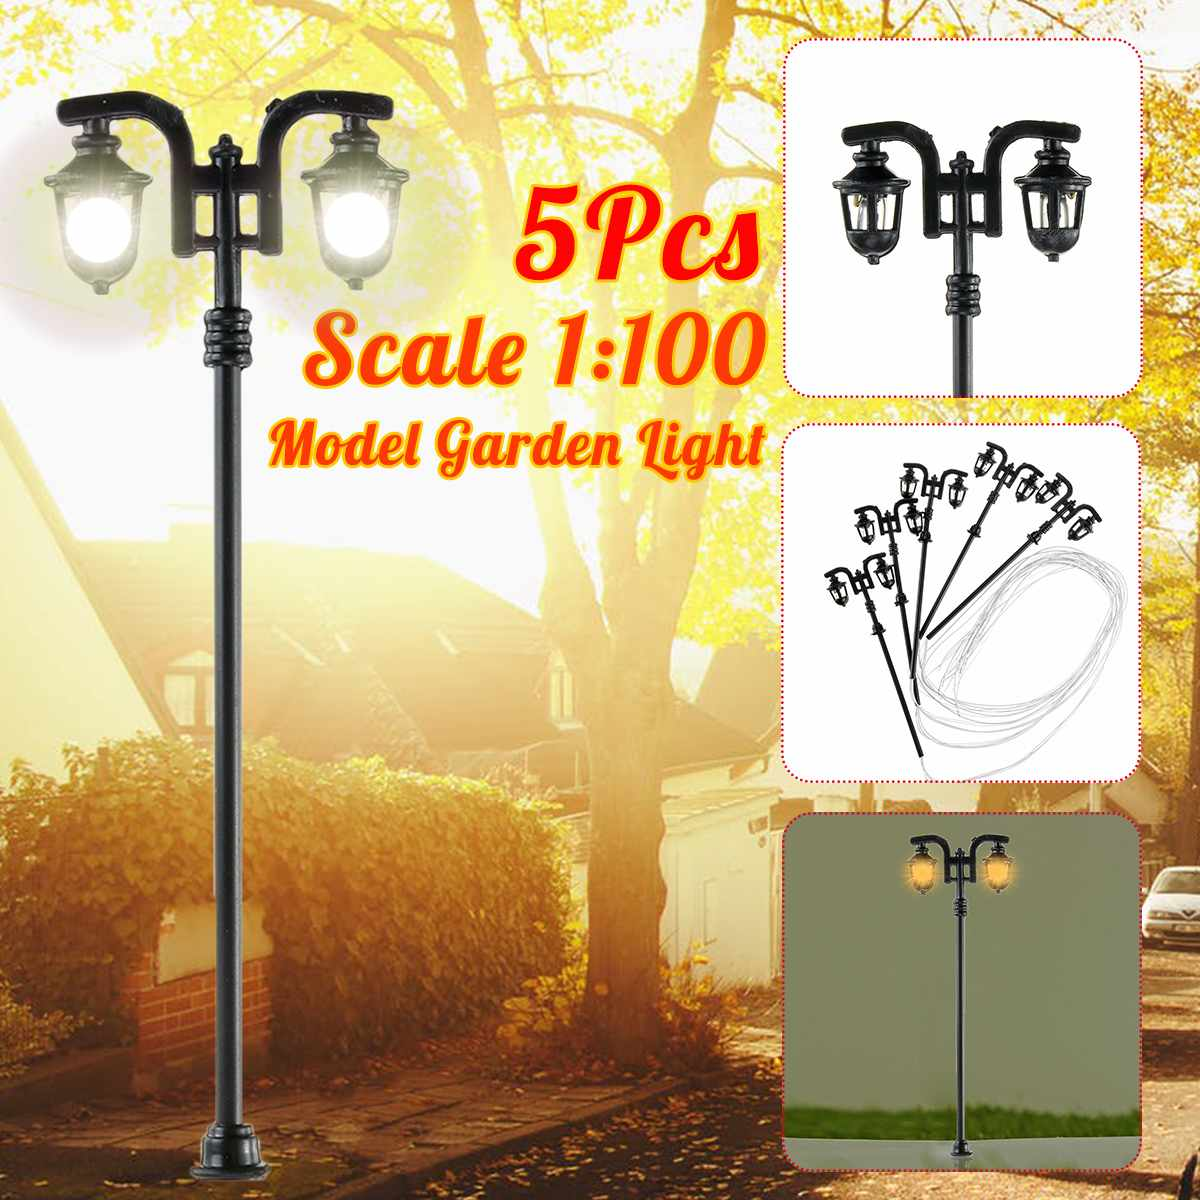 20pcs 1:100 Model Garden Street Light Double Heads Lamppost Mini Railway Train Lamp Micro Landscape Light Model